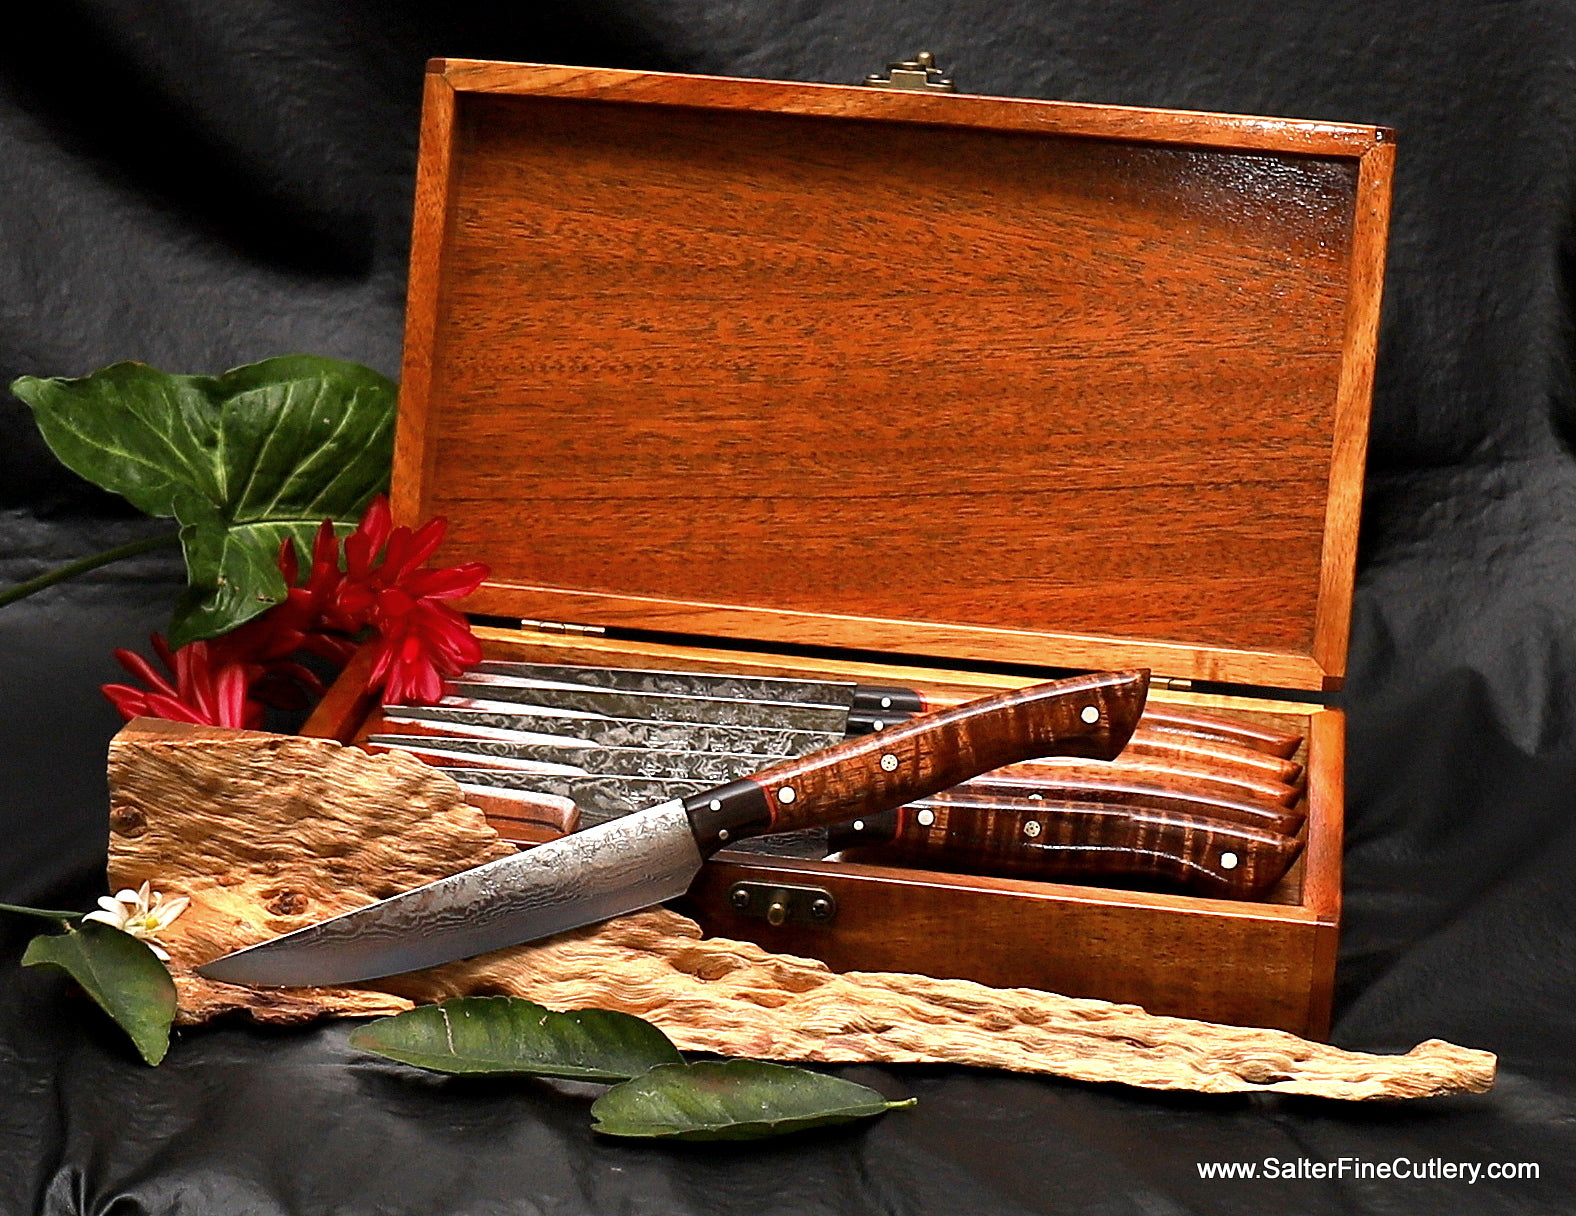 6-piece luxury steak knife set in under-counter stackable gift box handcrafted in Hawaii with exotic and beautiful koa wood handles and box by Salter Fine Cutlery